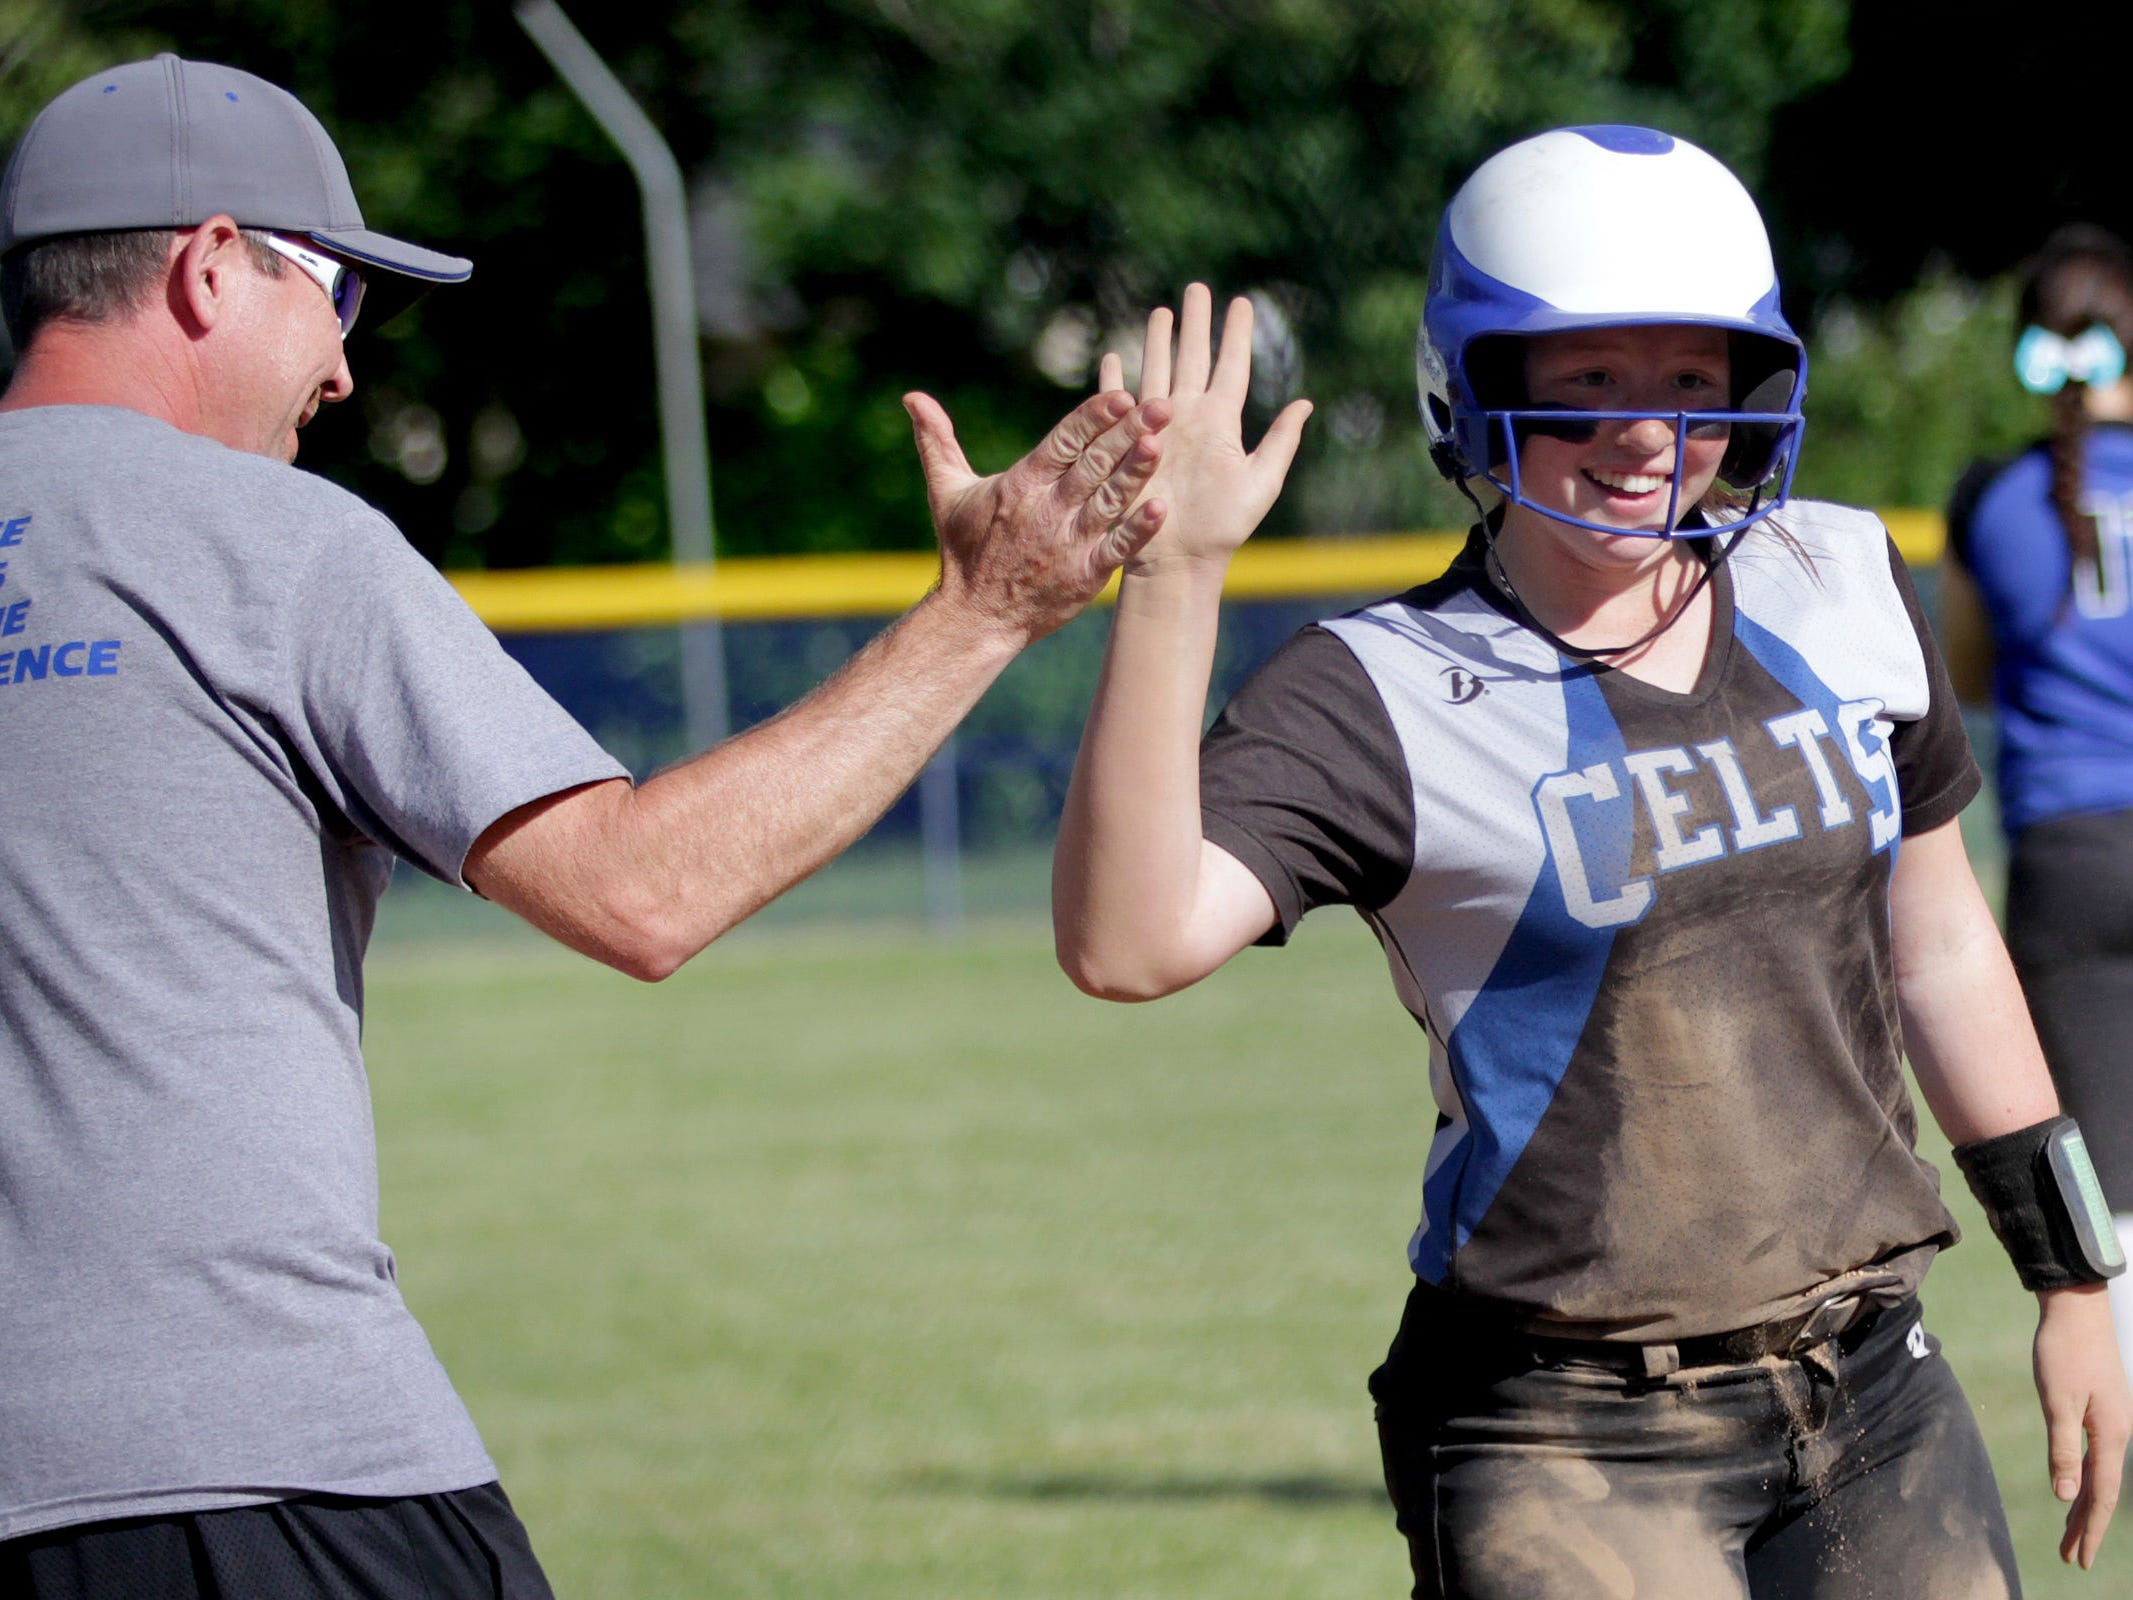 McNary's Hannah Carr (11) high-fives head coach Kevin Wise in the Gresham vs. McNary softball game, in the first round of the OSAA class 6A state playoffs, at McNary High School in Keizer on Monday, May 25, 2015. McNary won the game 11-7.